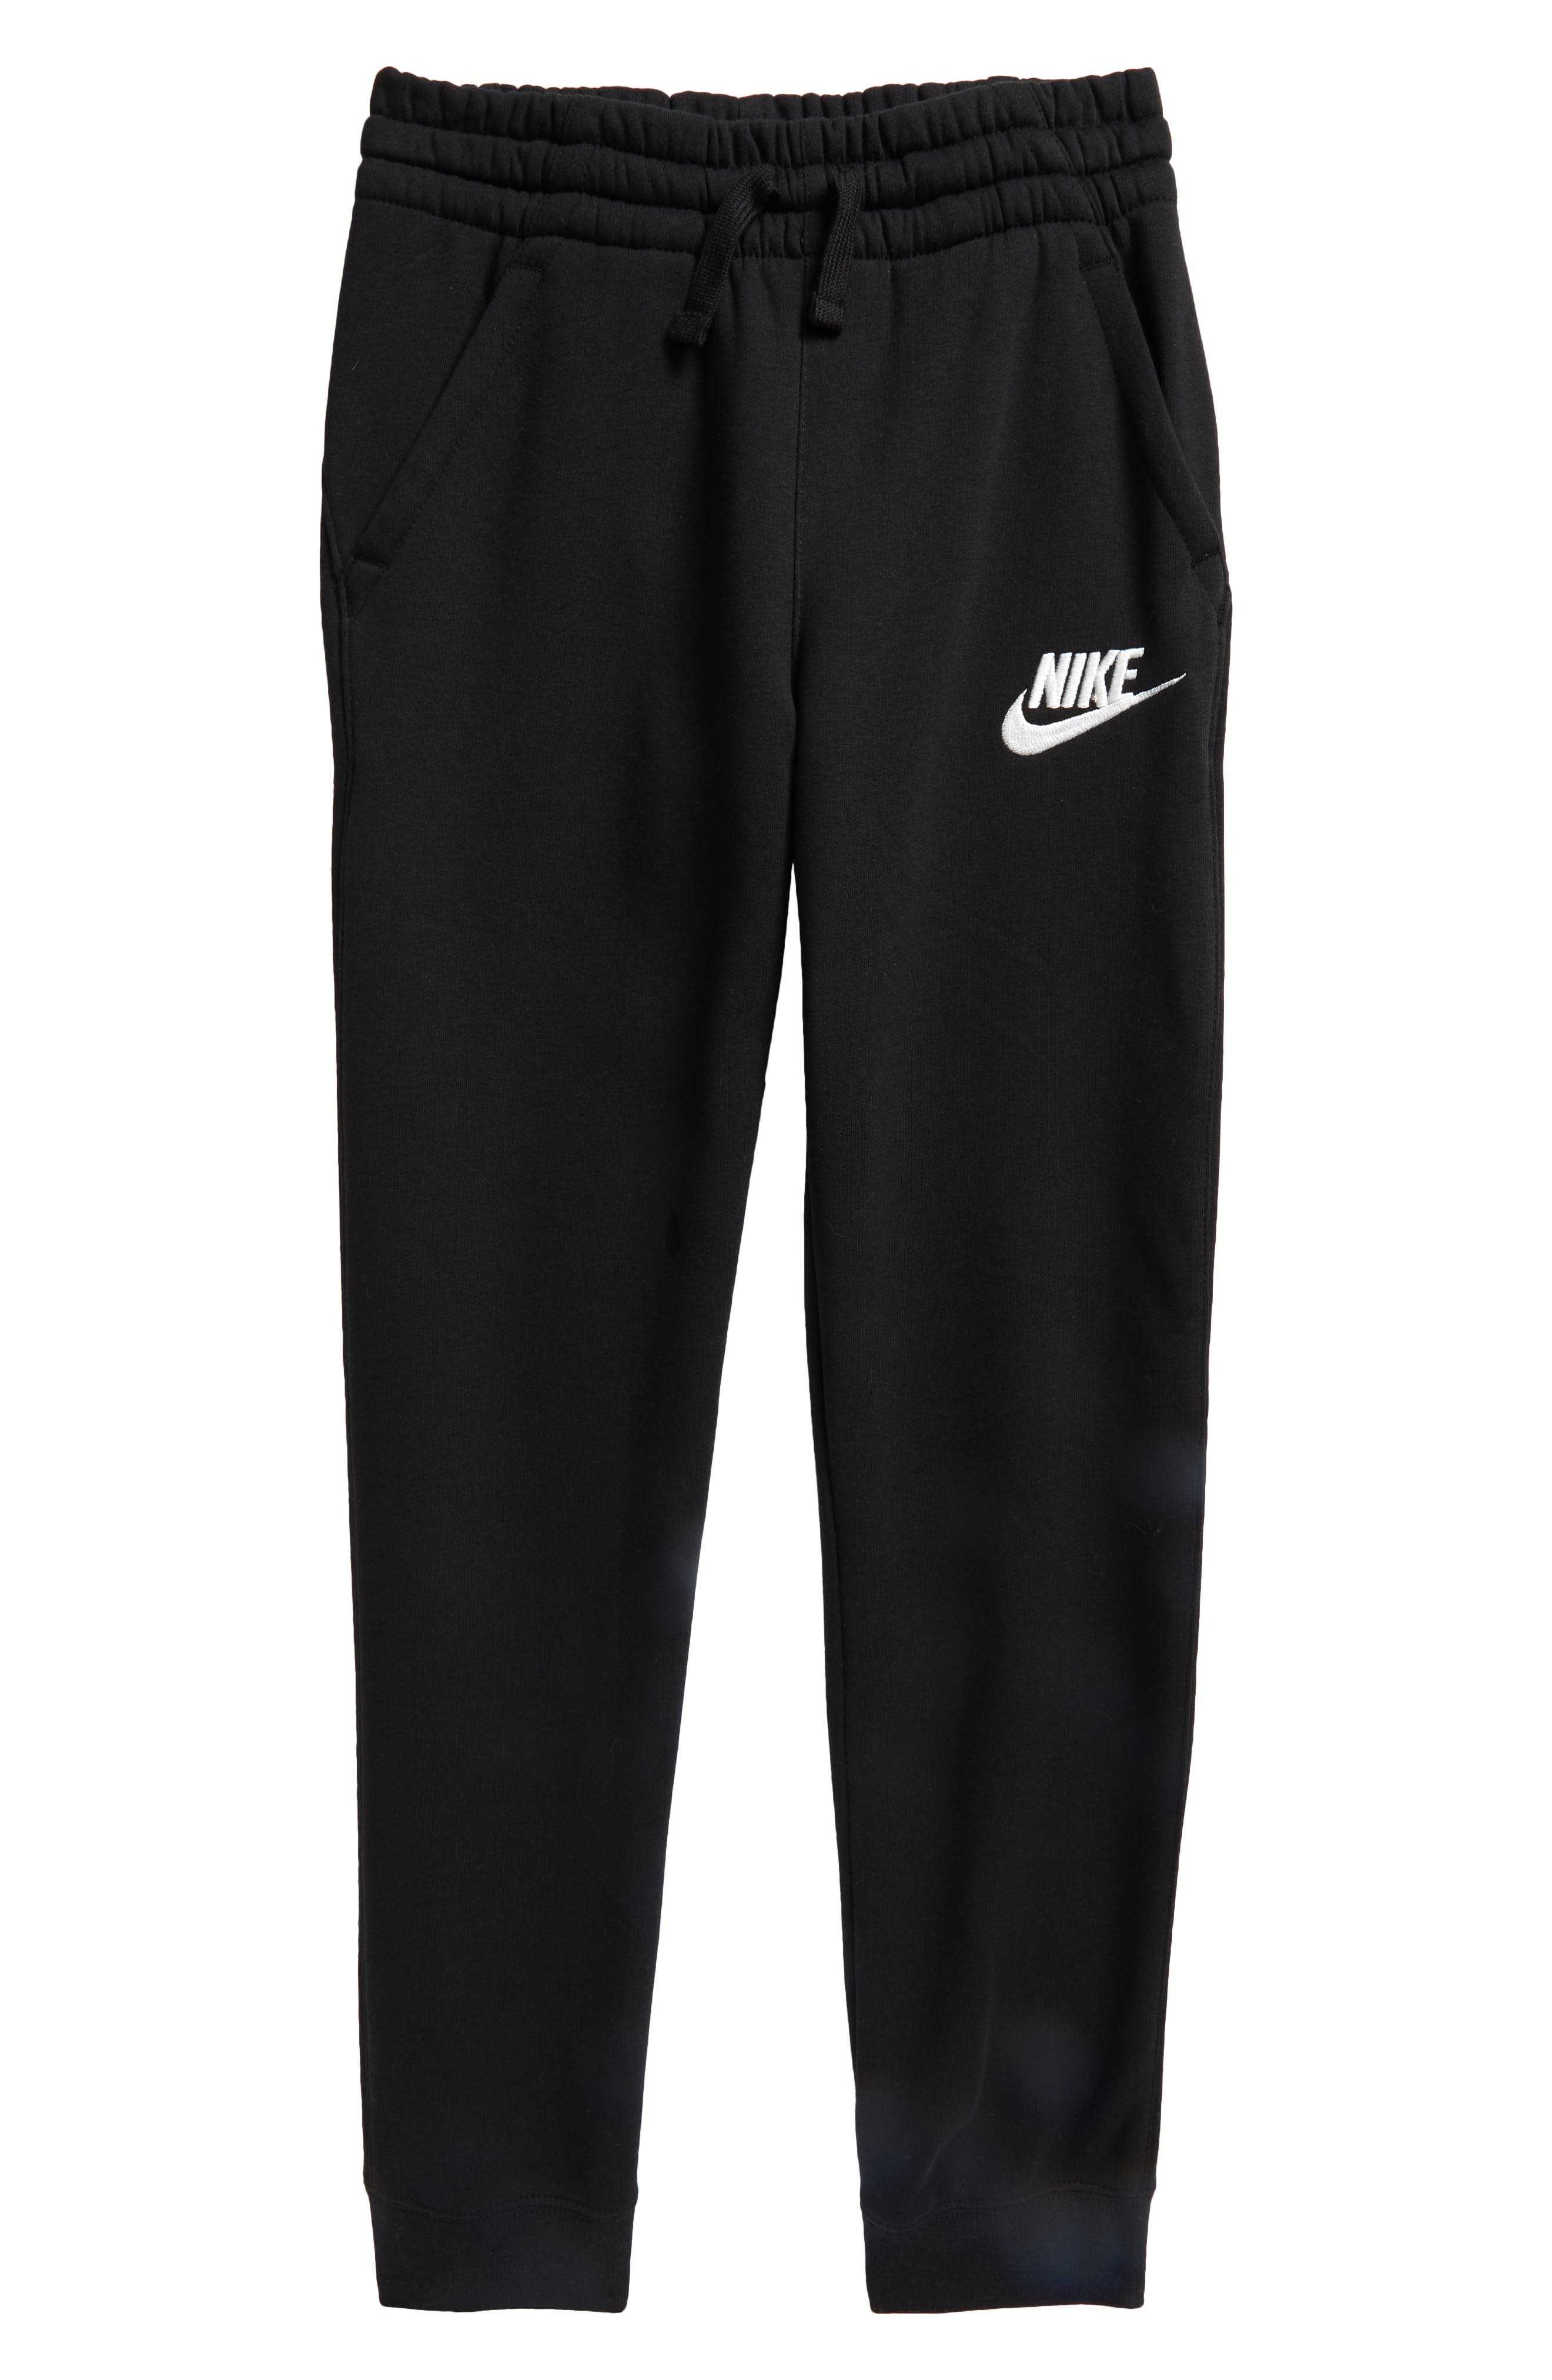 Image of Nike Drawstring Fleece Joggers